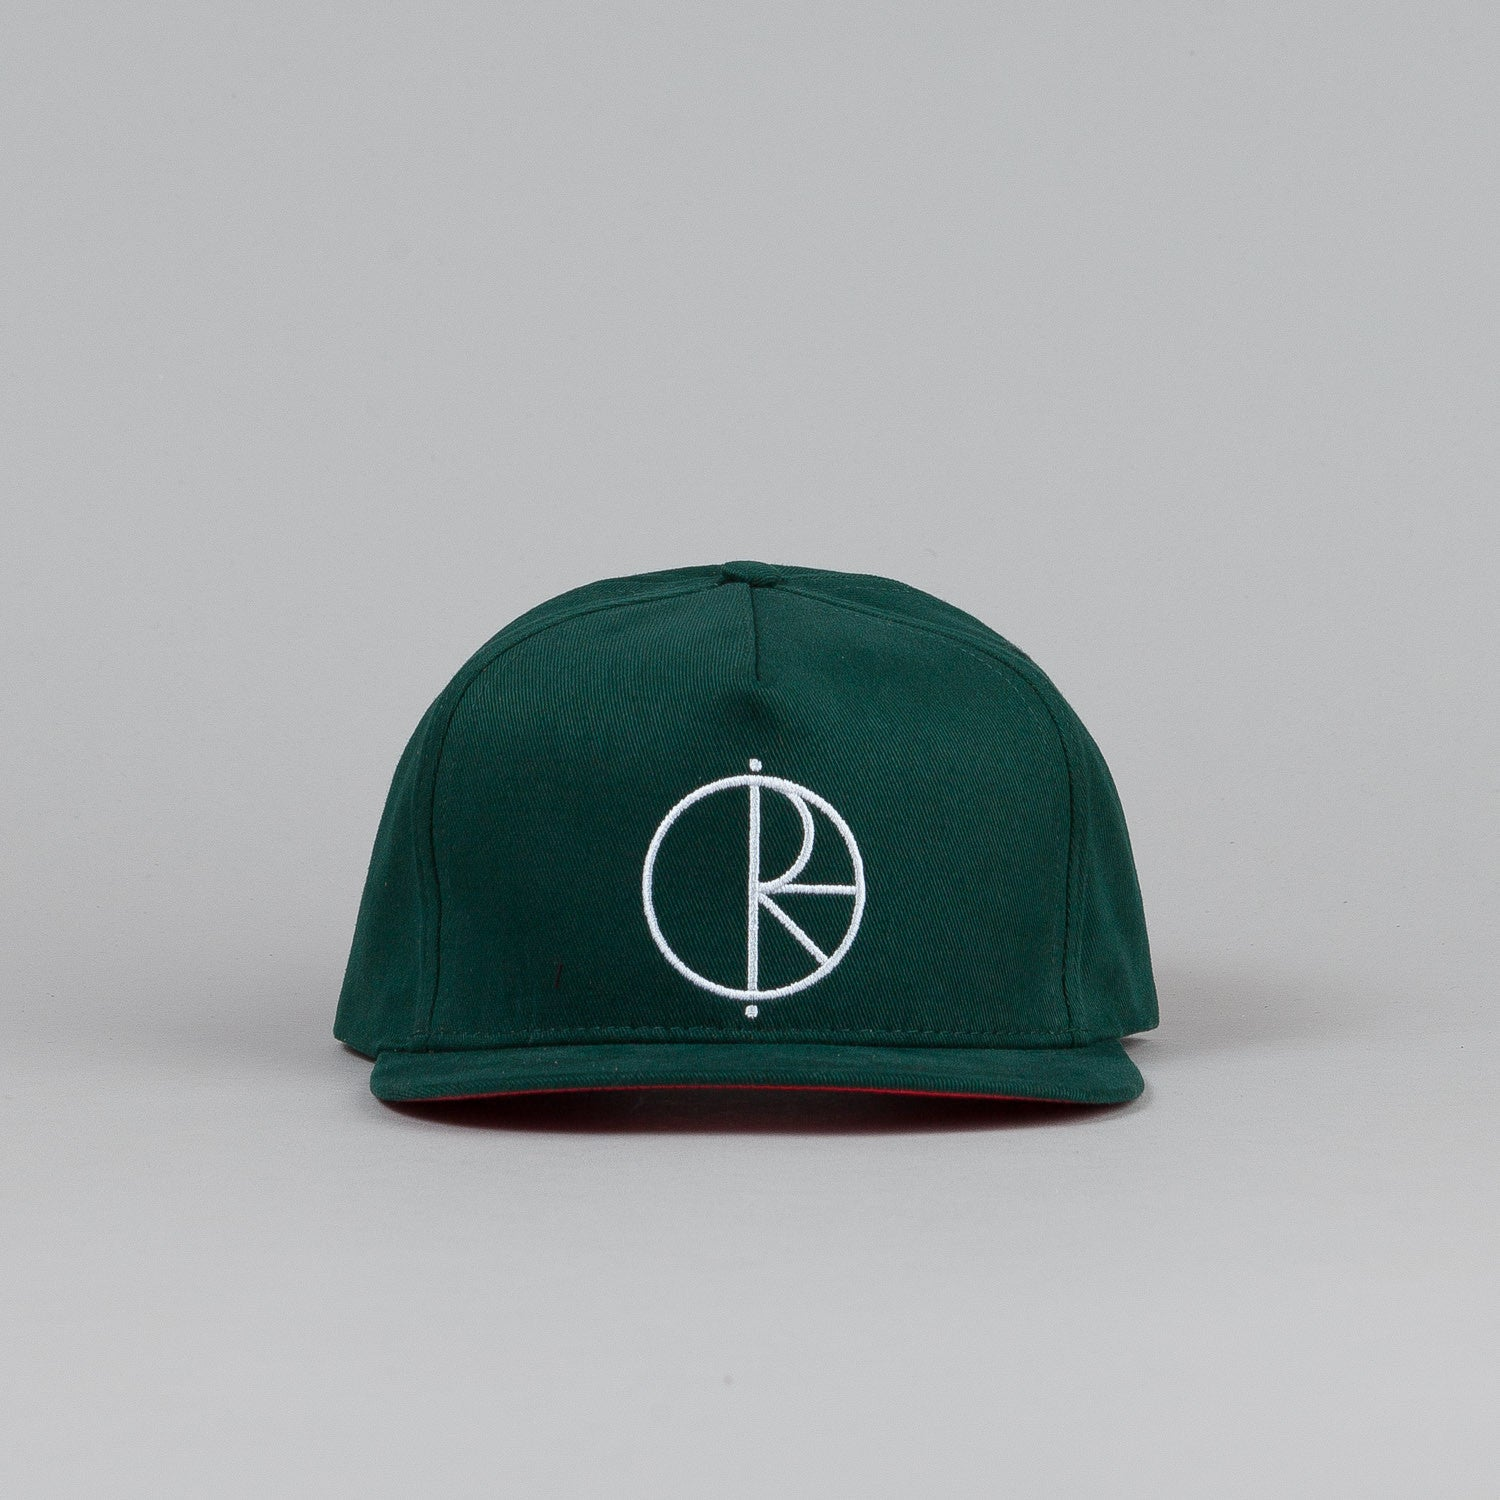 Polar Stroke Logo Snapback Cap Forest Green / Red Satin / White Stroke Logo